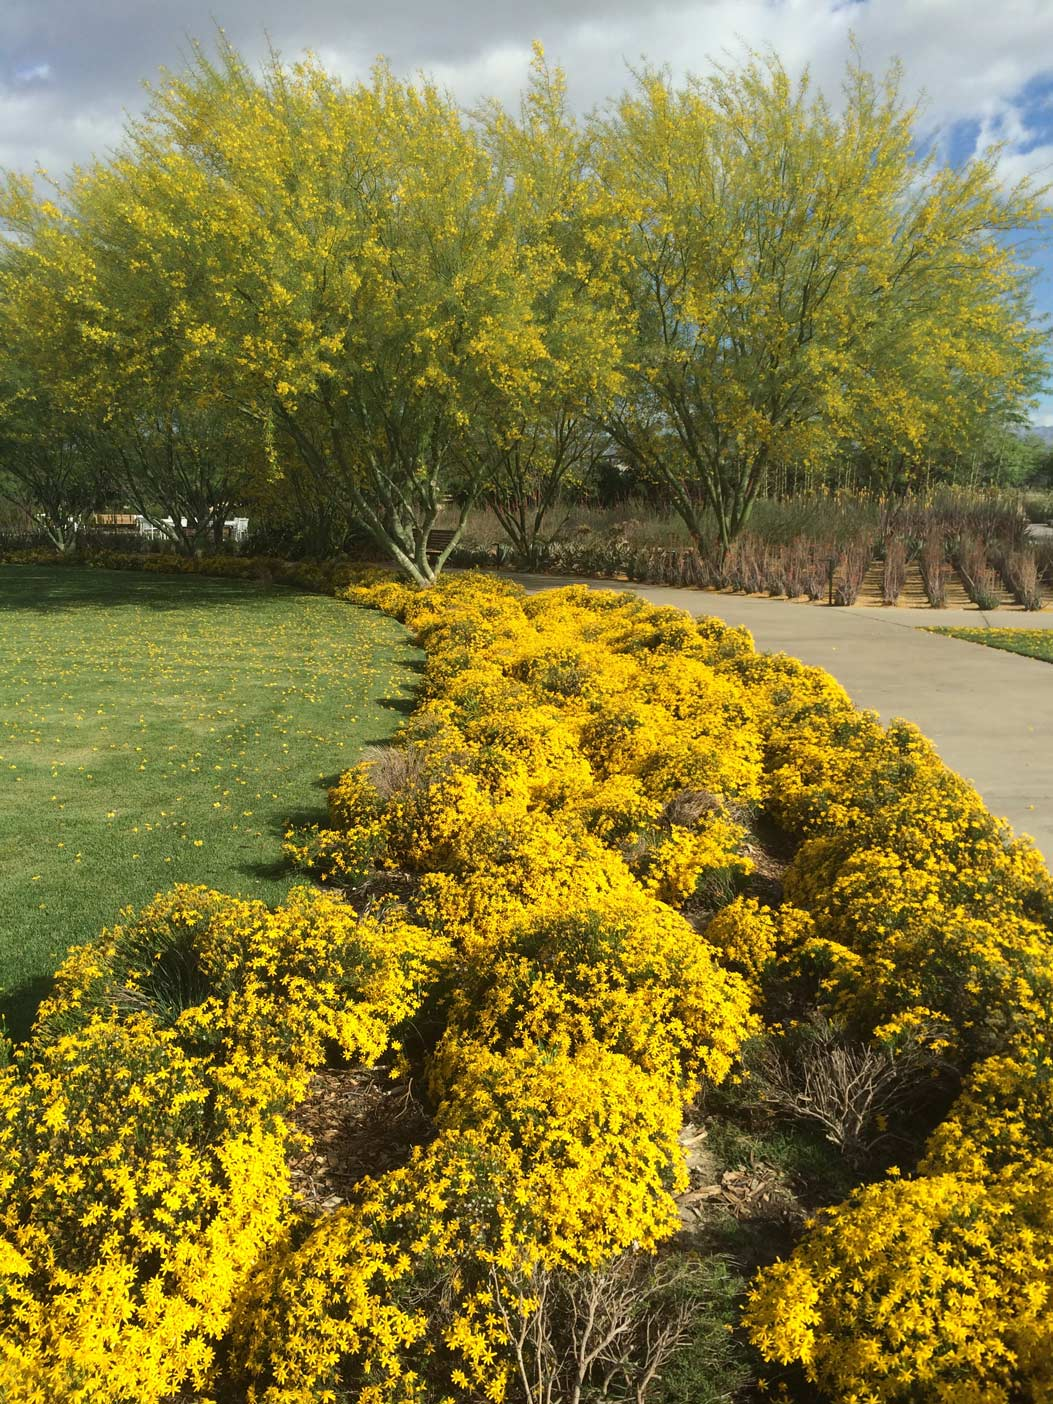 The right side of the Great Lawn with bright yellow Damianita blooms bordering the lawn sits in the foreground. In the background, the lawn is bordered by blooming Palo Verde trees.